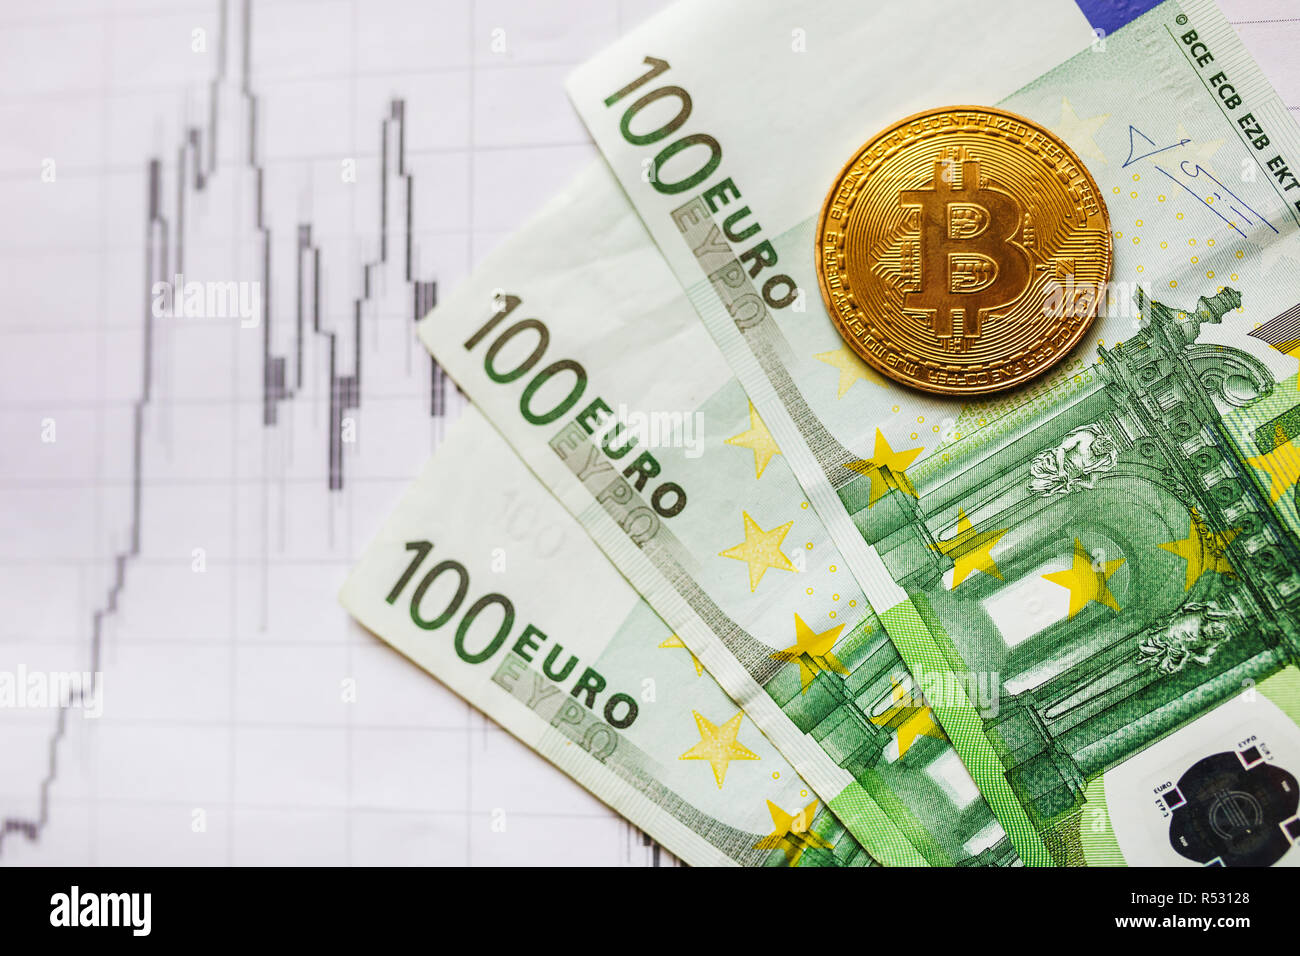 virtual money golden bitcoin on hundred euro bills and on paper